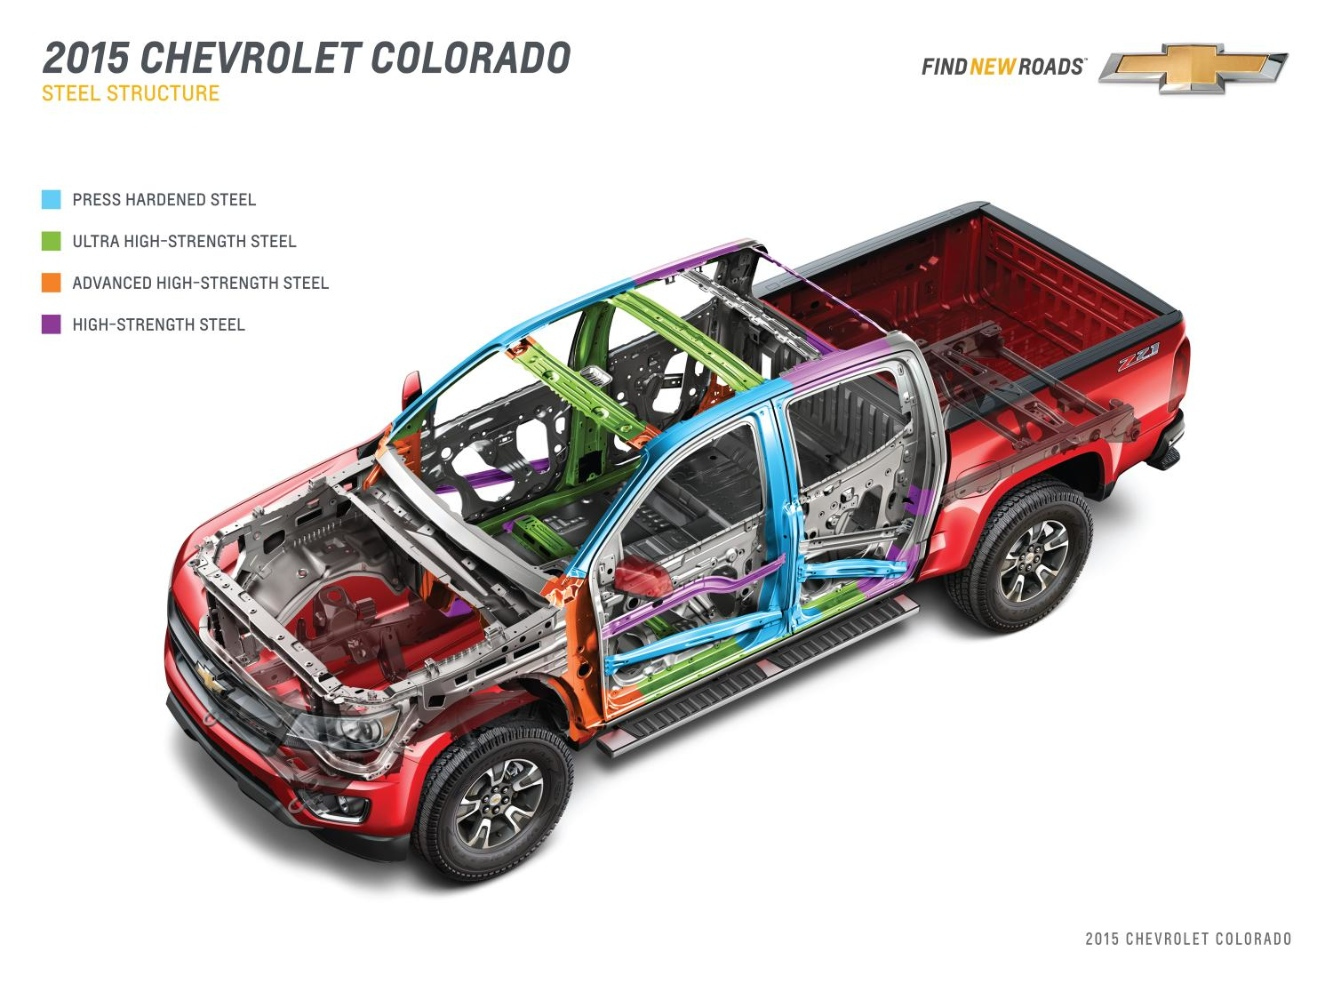 Chevrolet Details 2015 Colorado Engineering, Weight-Loss Program - autoevolution